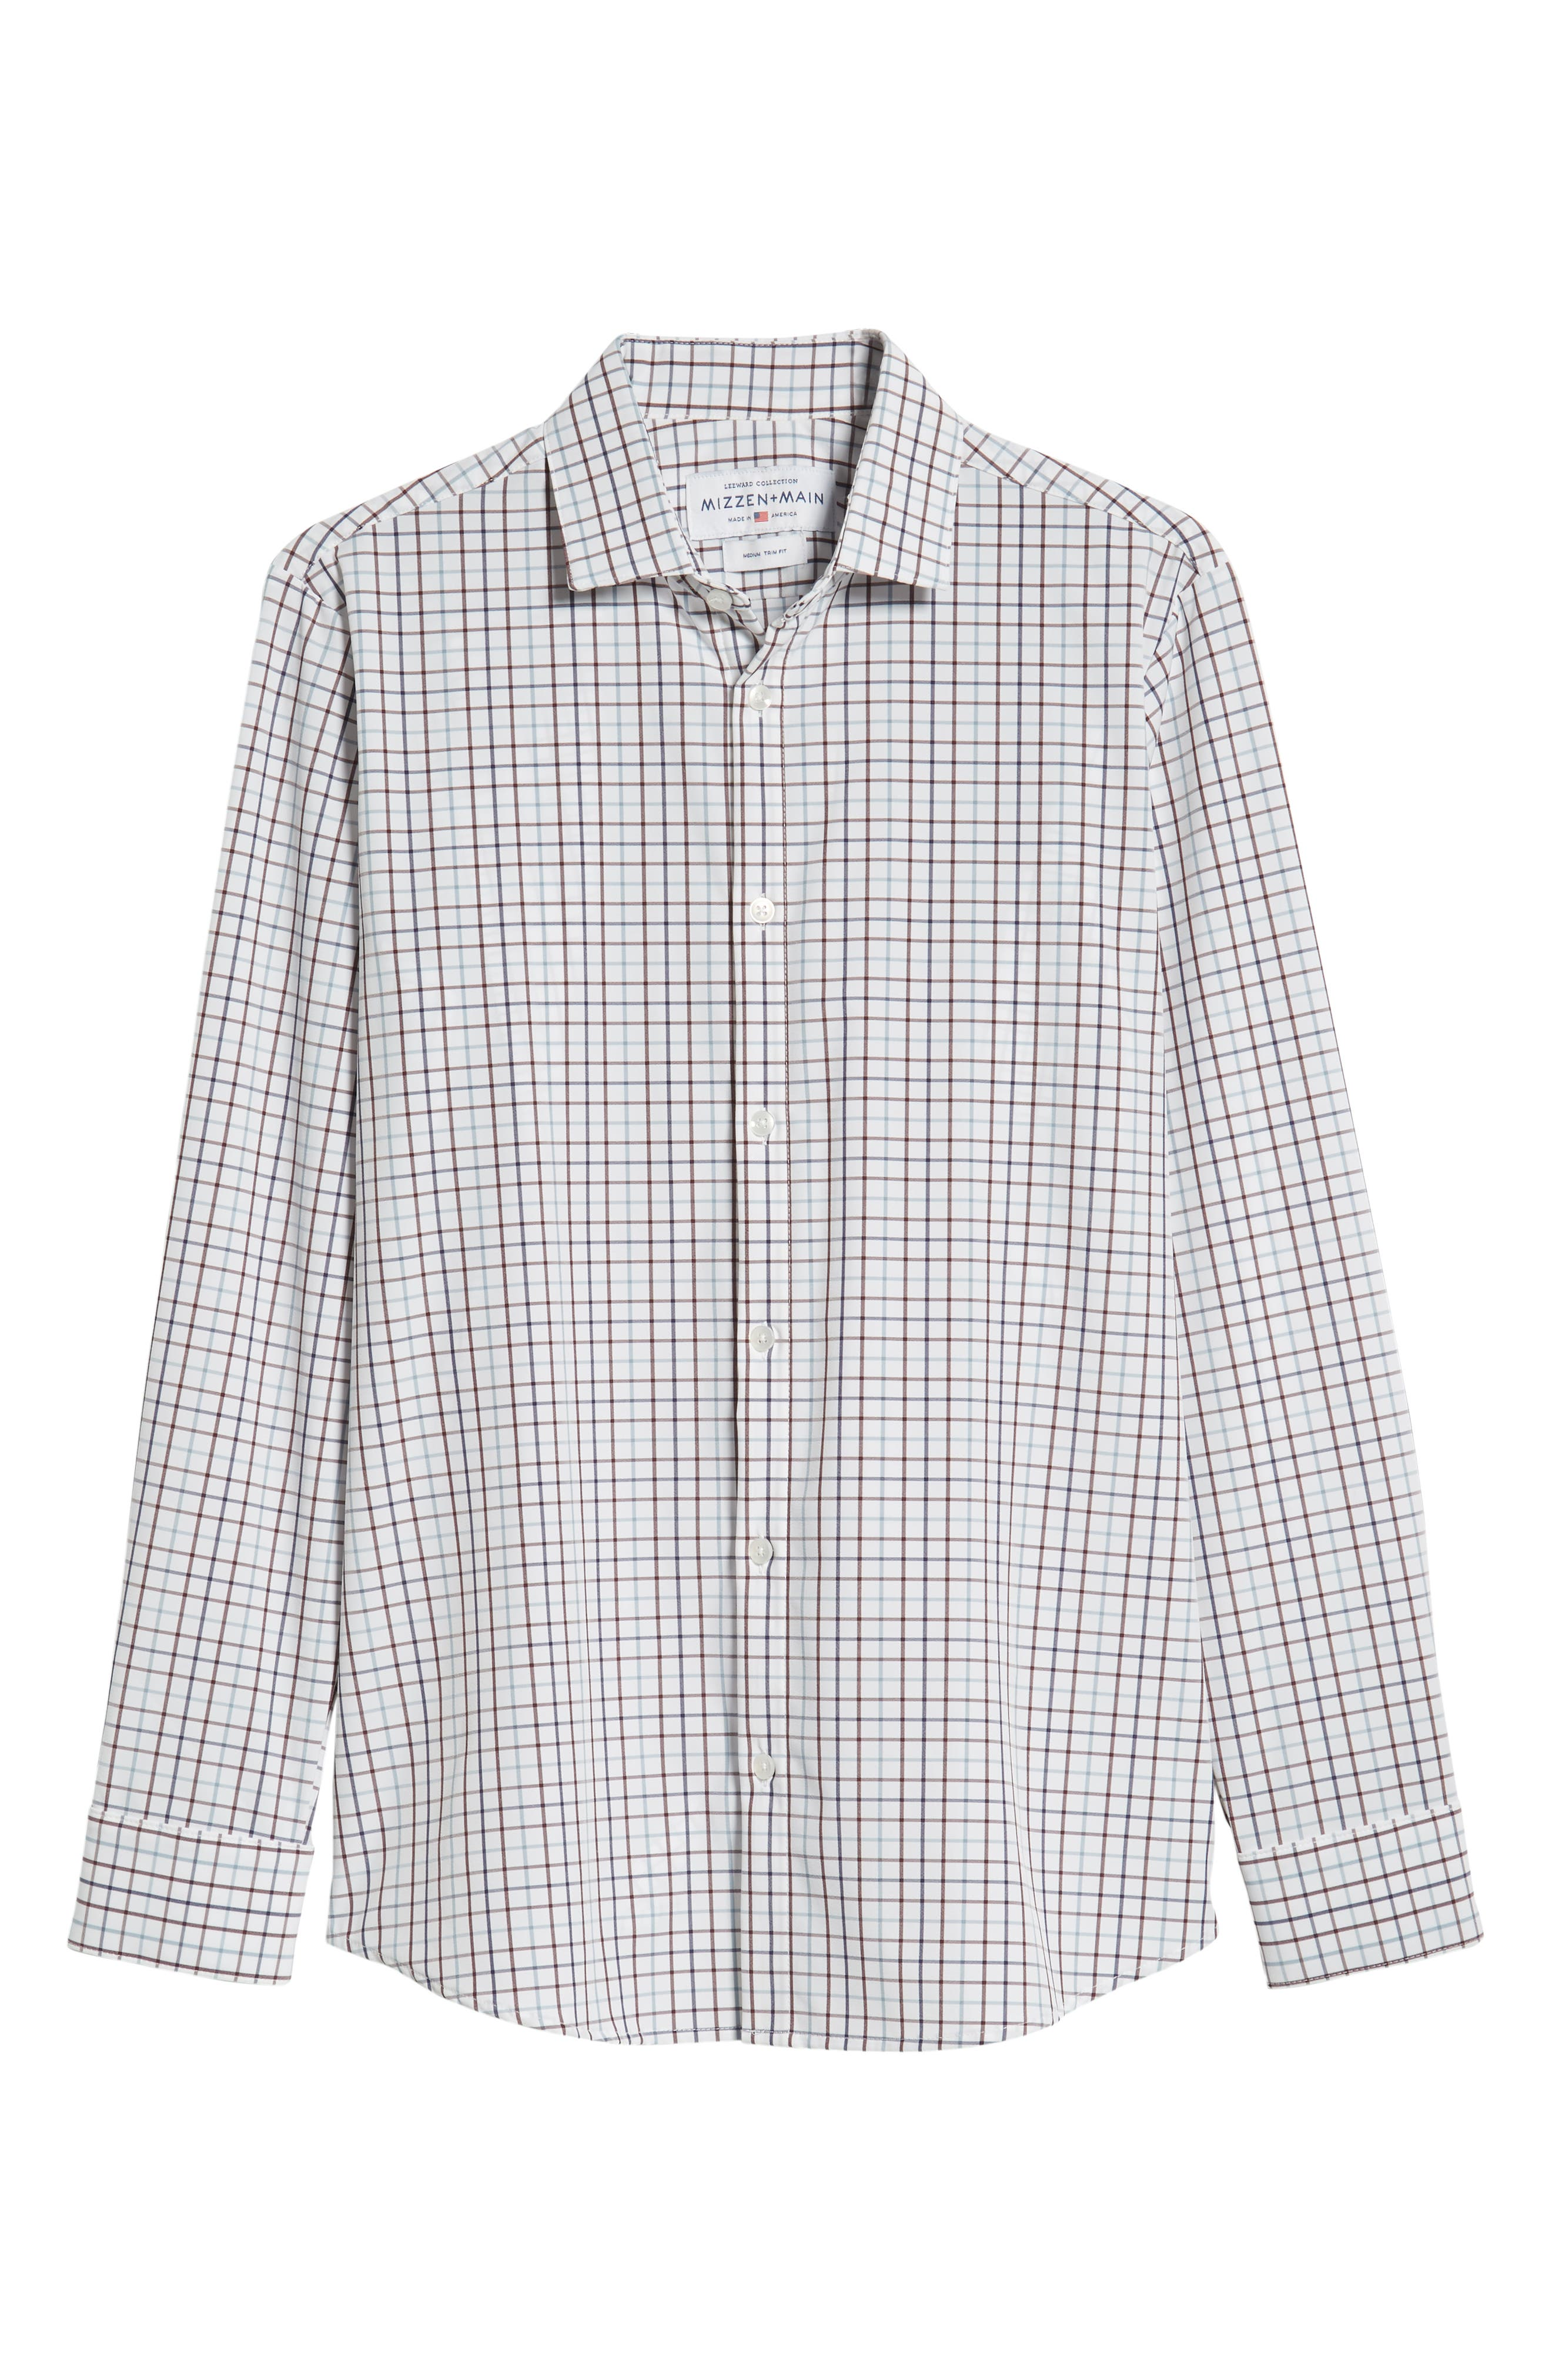 Ward Regular Fit Multi Check Performance Sport Shirt,                             Alternate thumbnail 5, color,                             WHITE